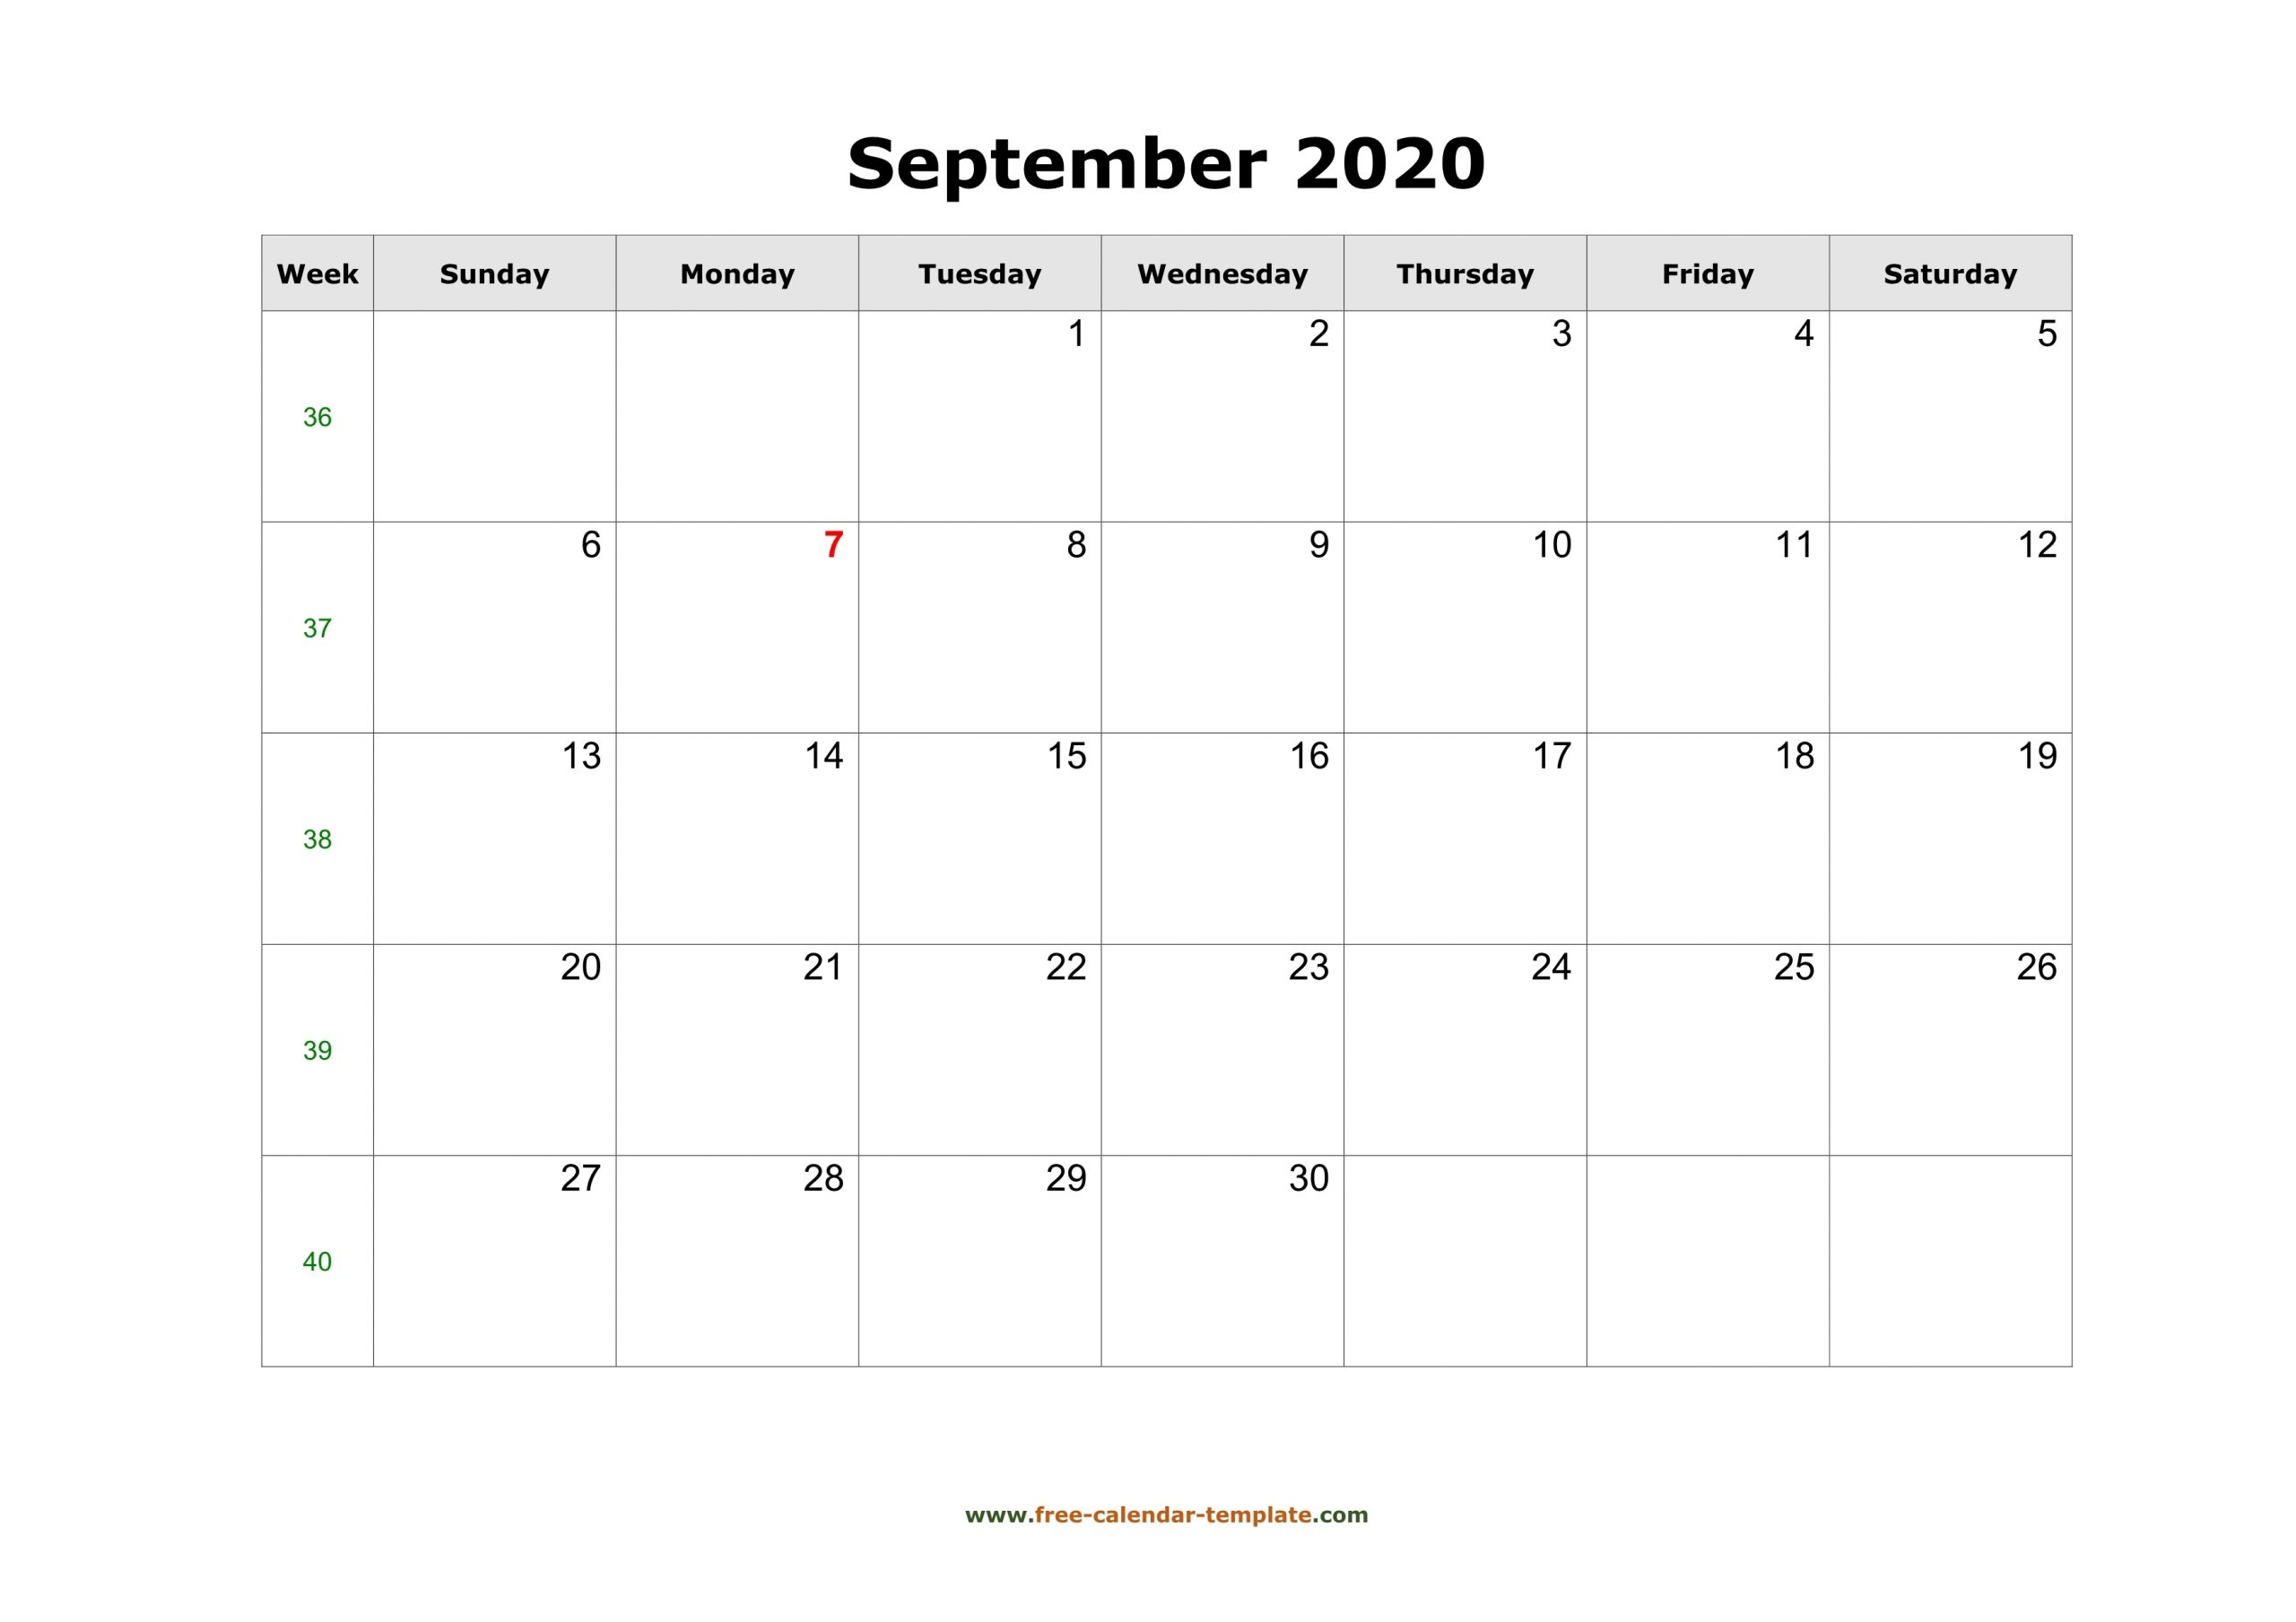 Simple September Calendar 2020 Large Box On Each Day For throughout Printable Calendar Large Box 2020